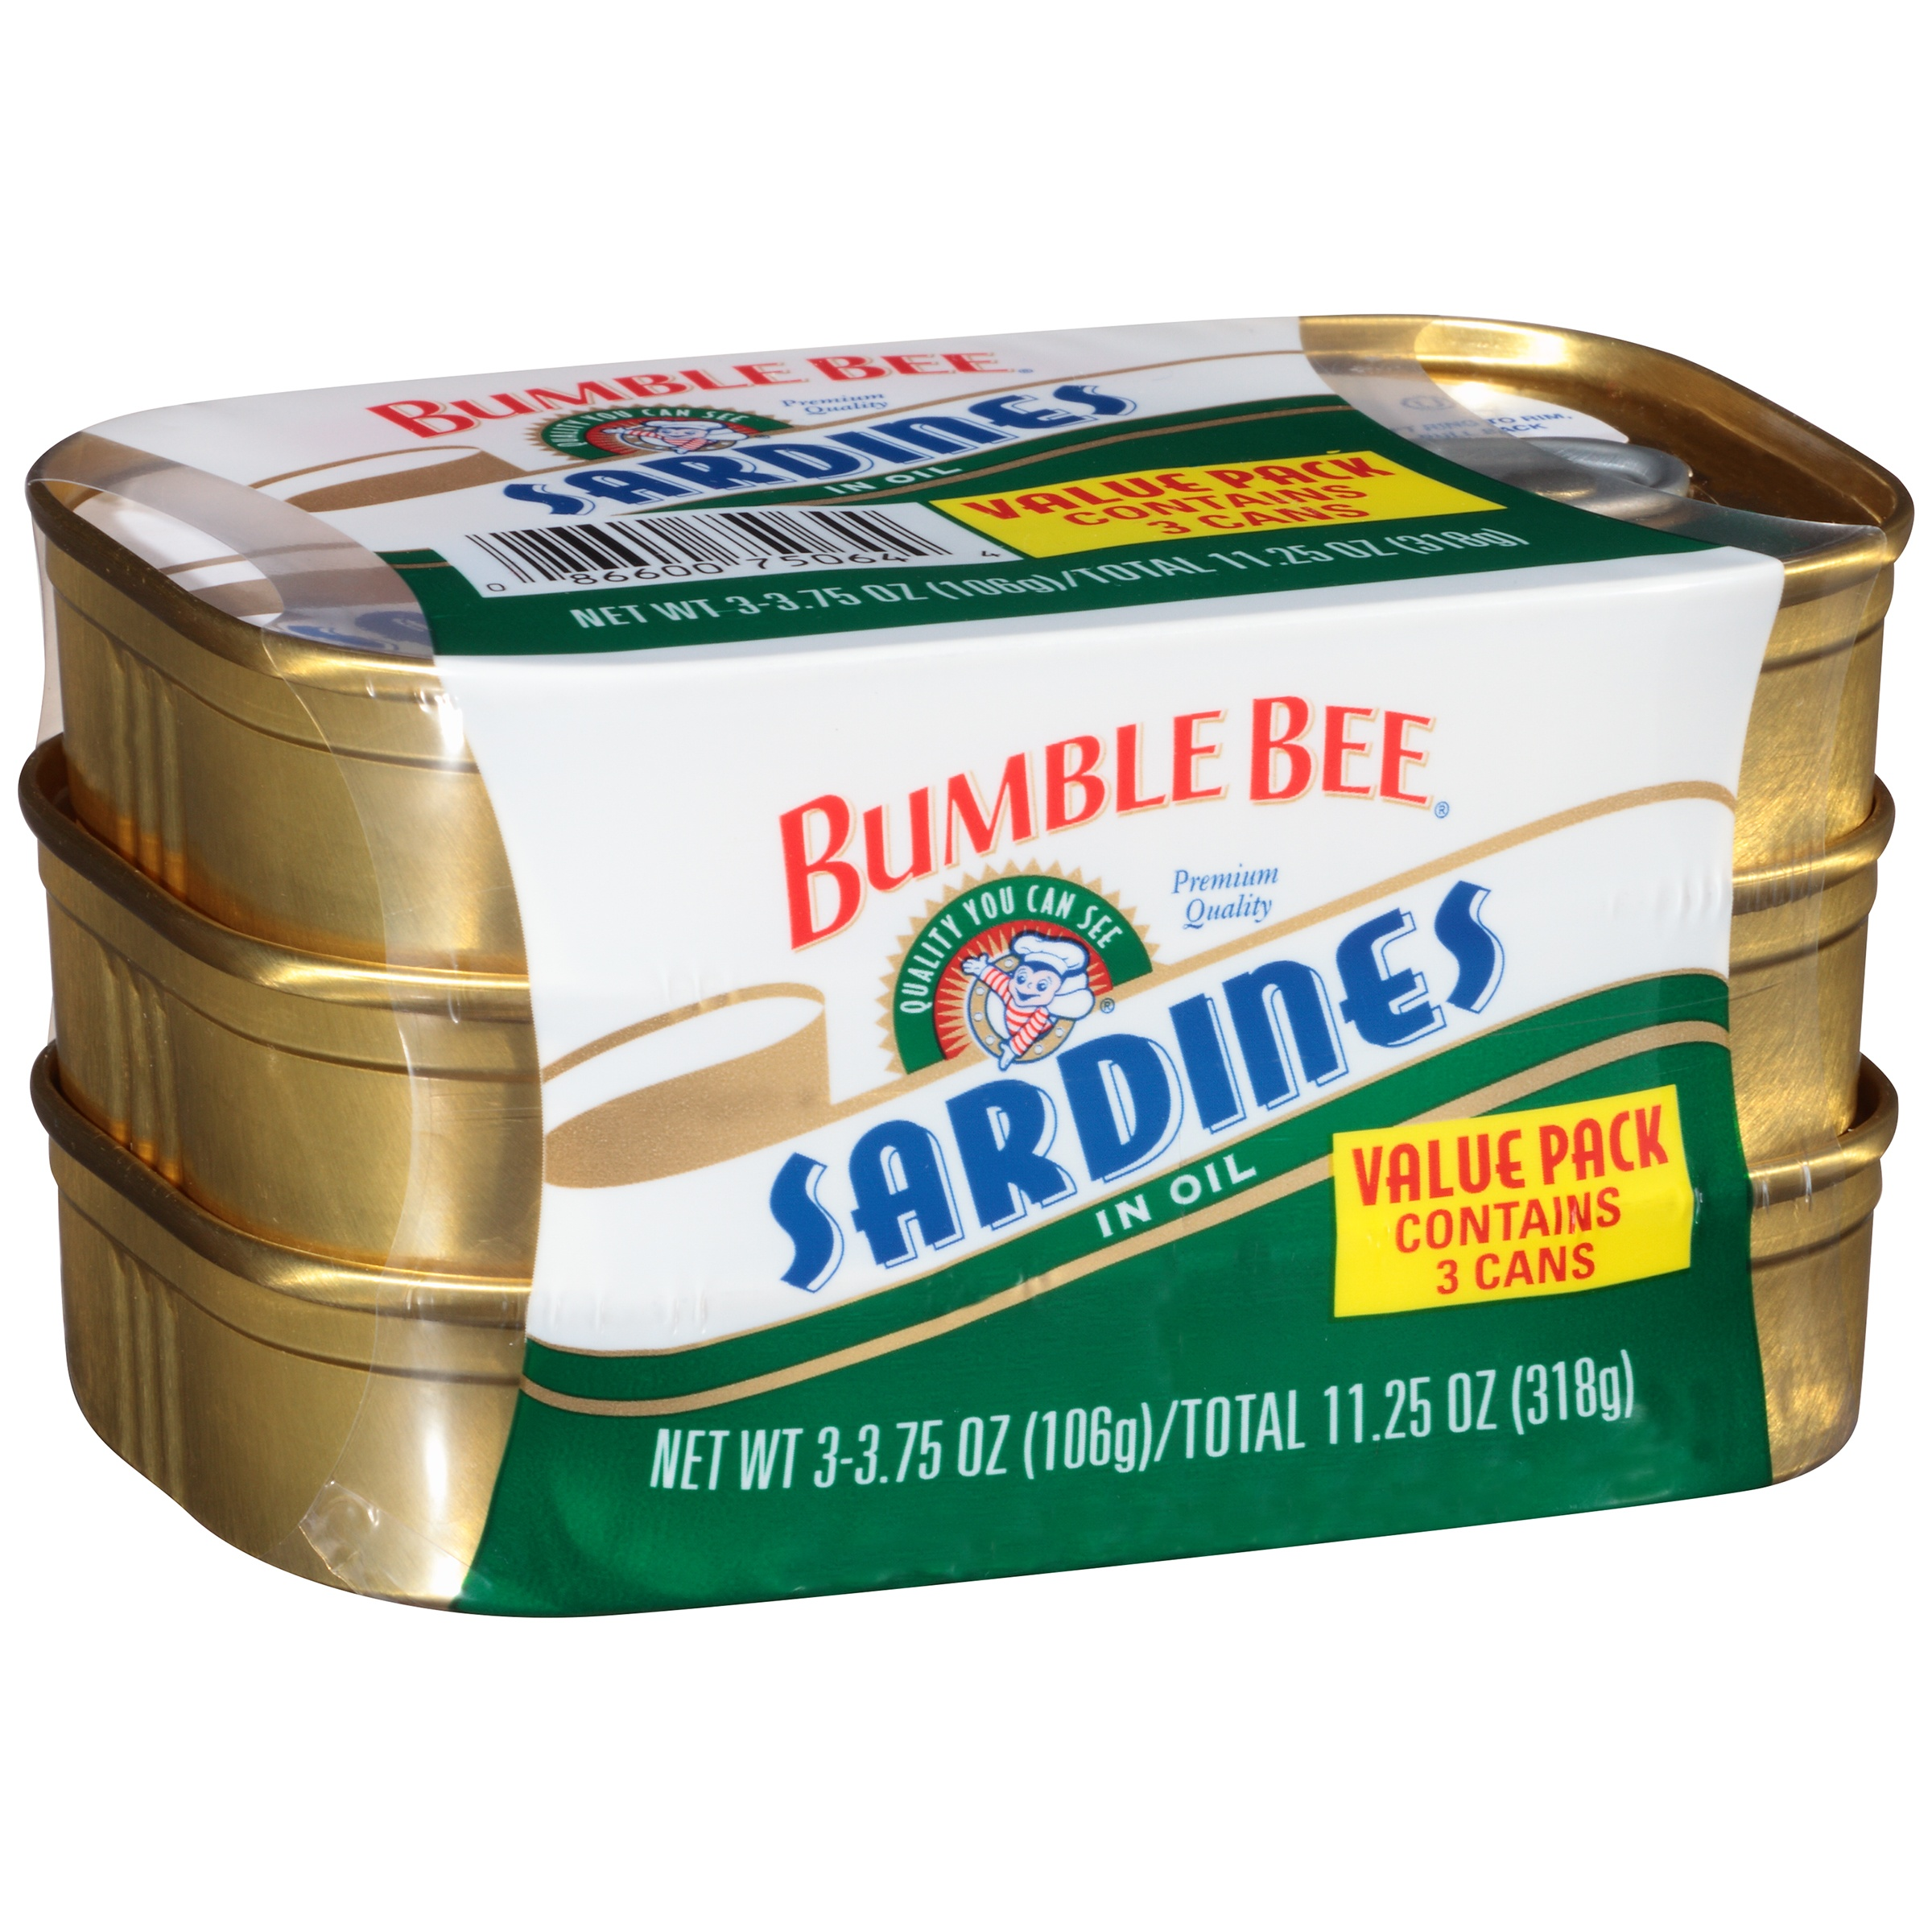 Bumble Bee Sardines in Oil 3.75oz by Bumble Bee Seafoods